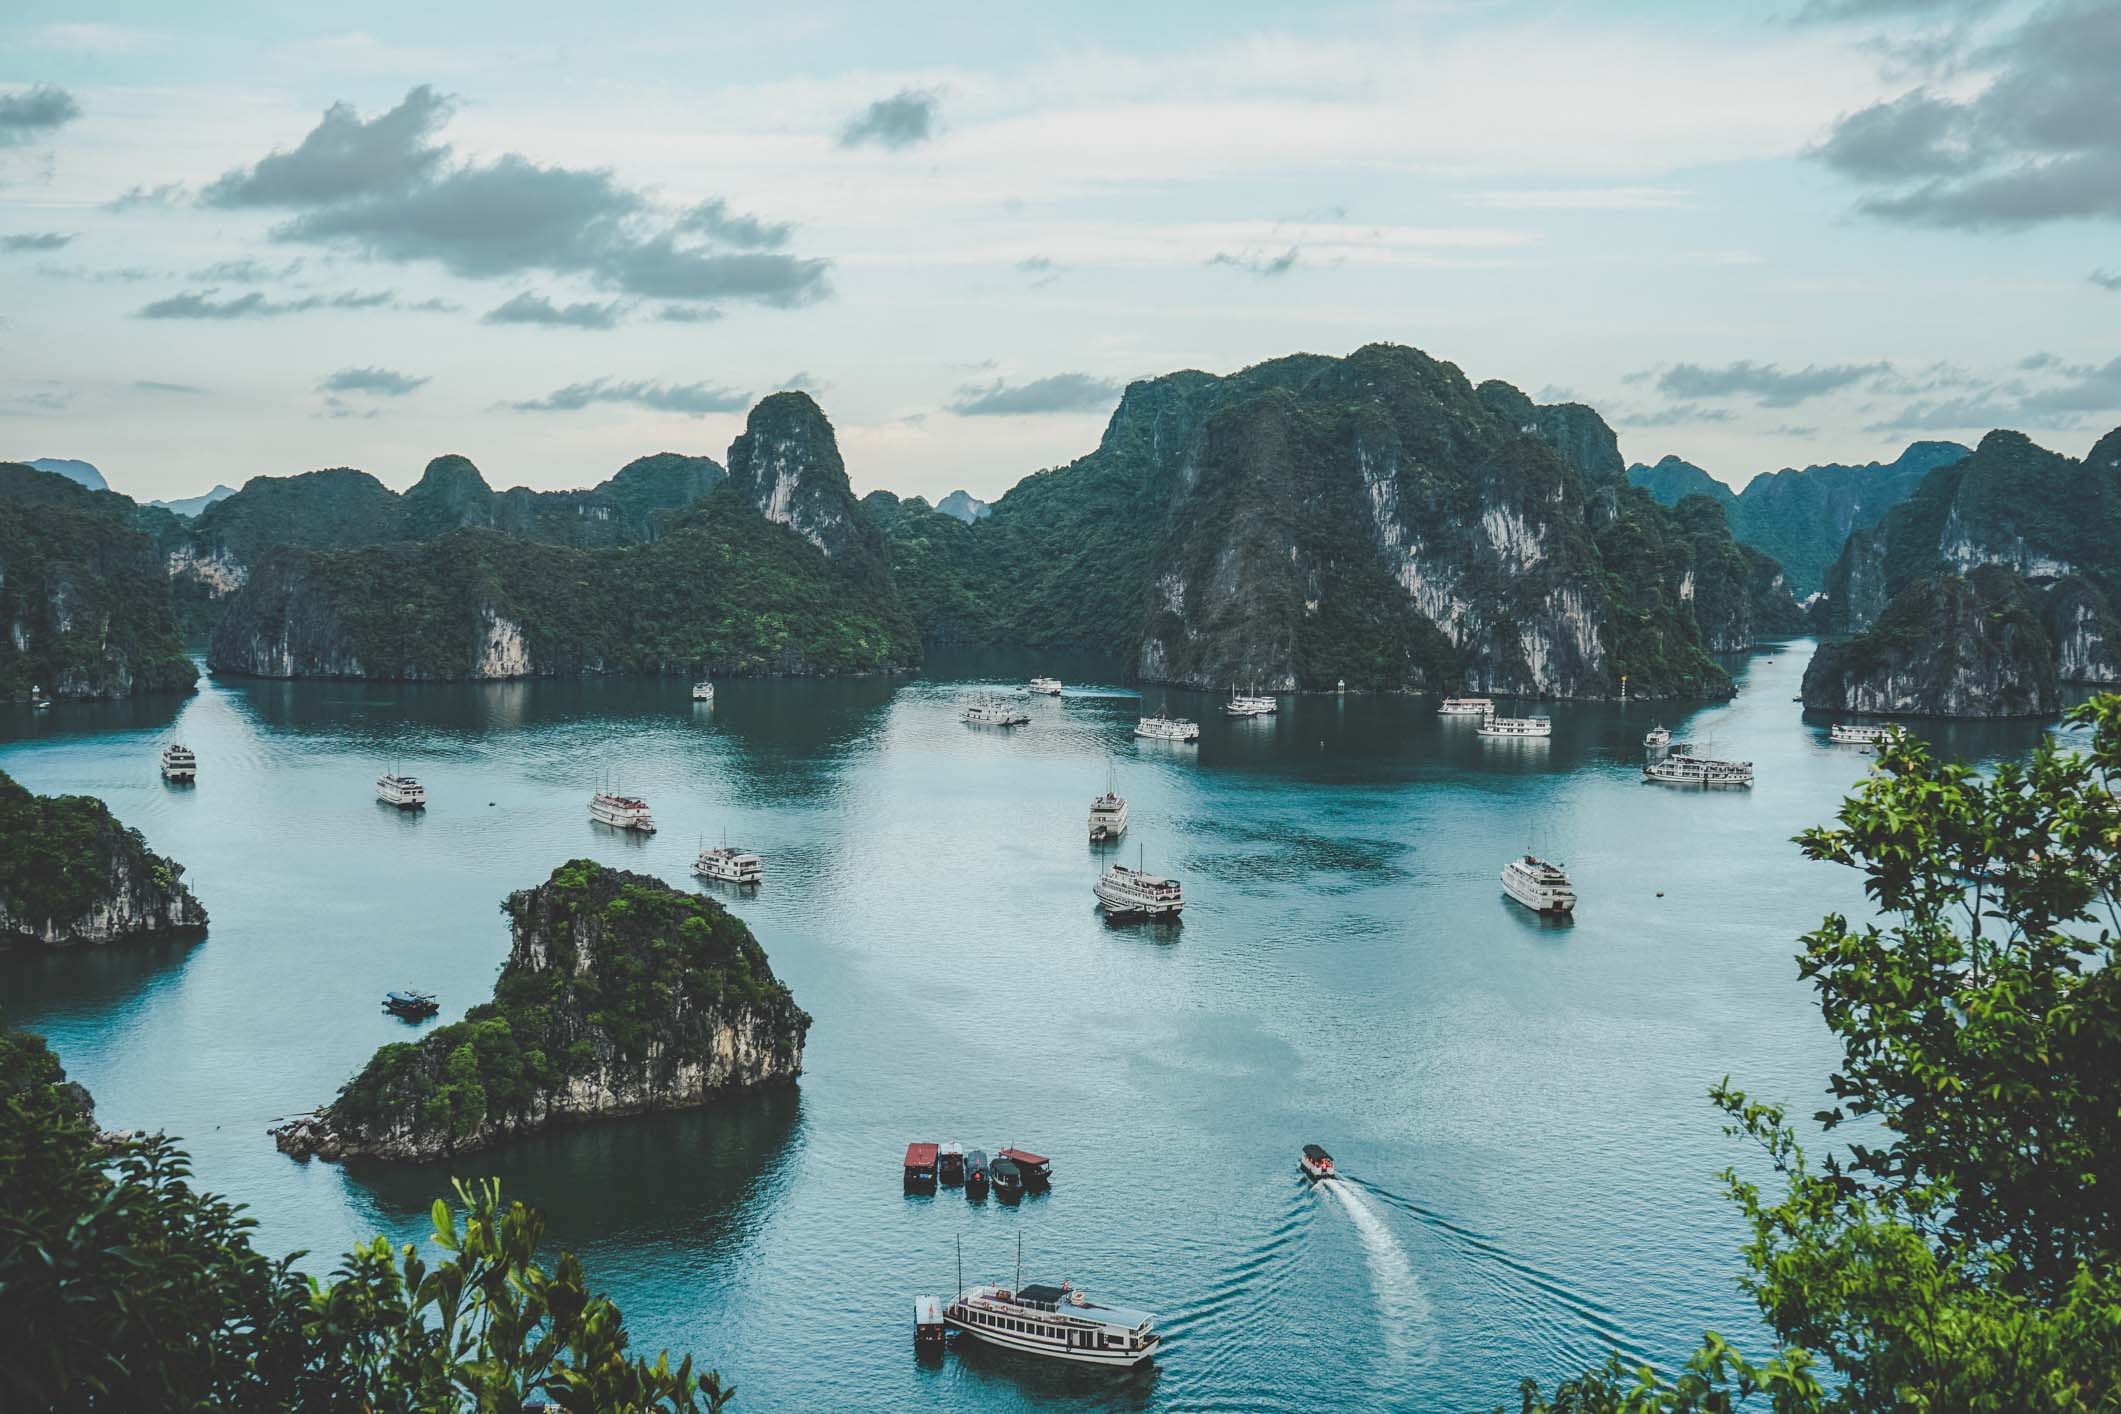 The 10 Best Things To Do In Hanoi Vietnam + More Travel Tips 1